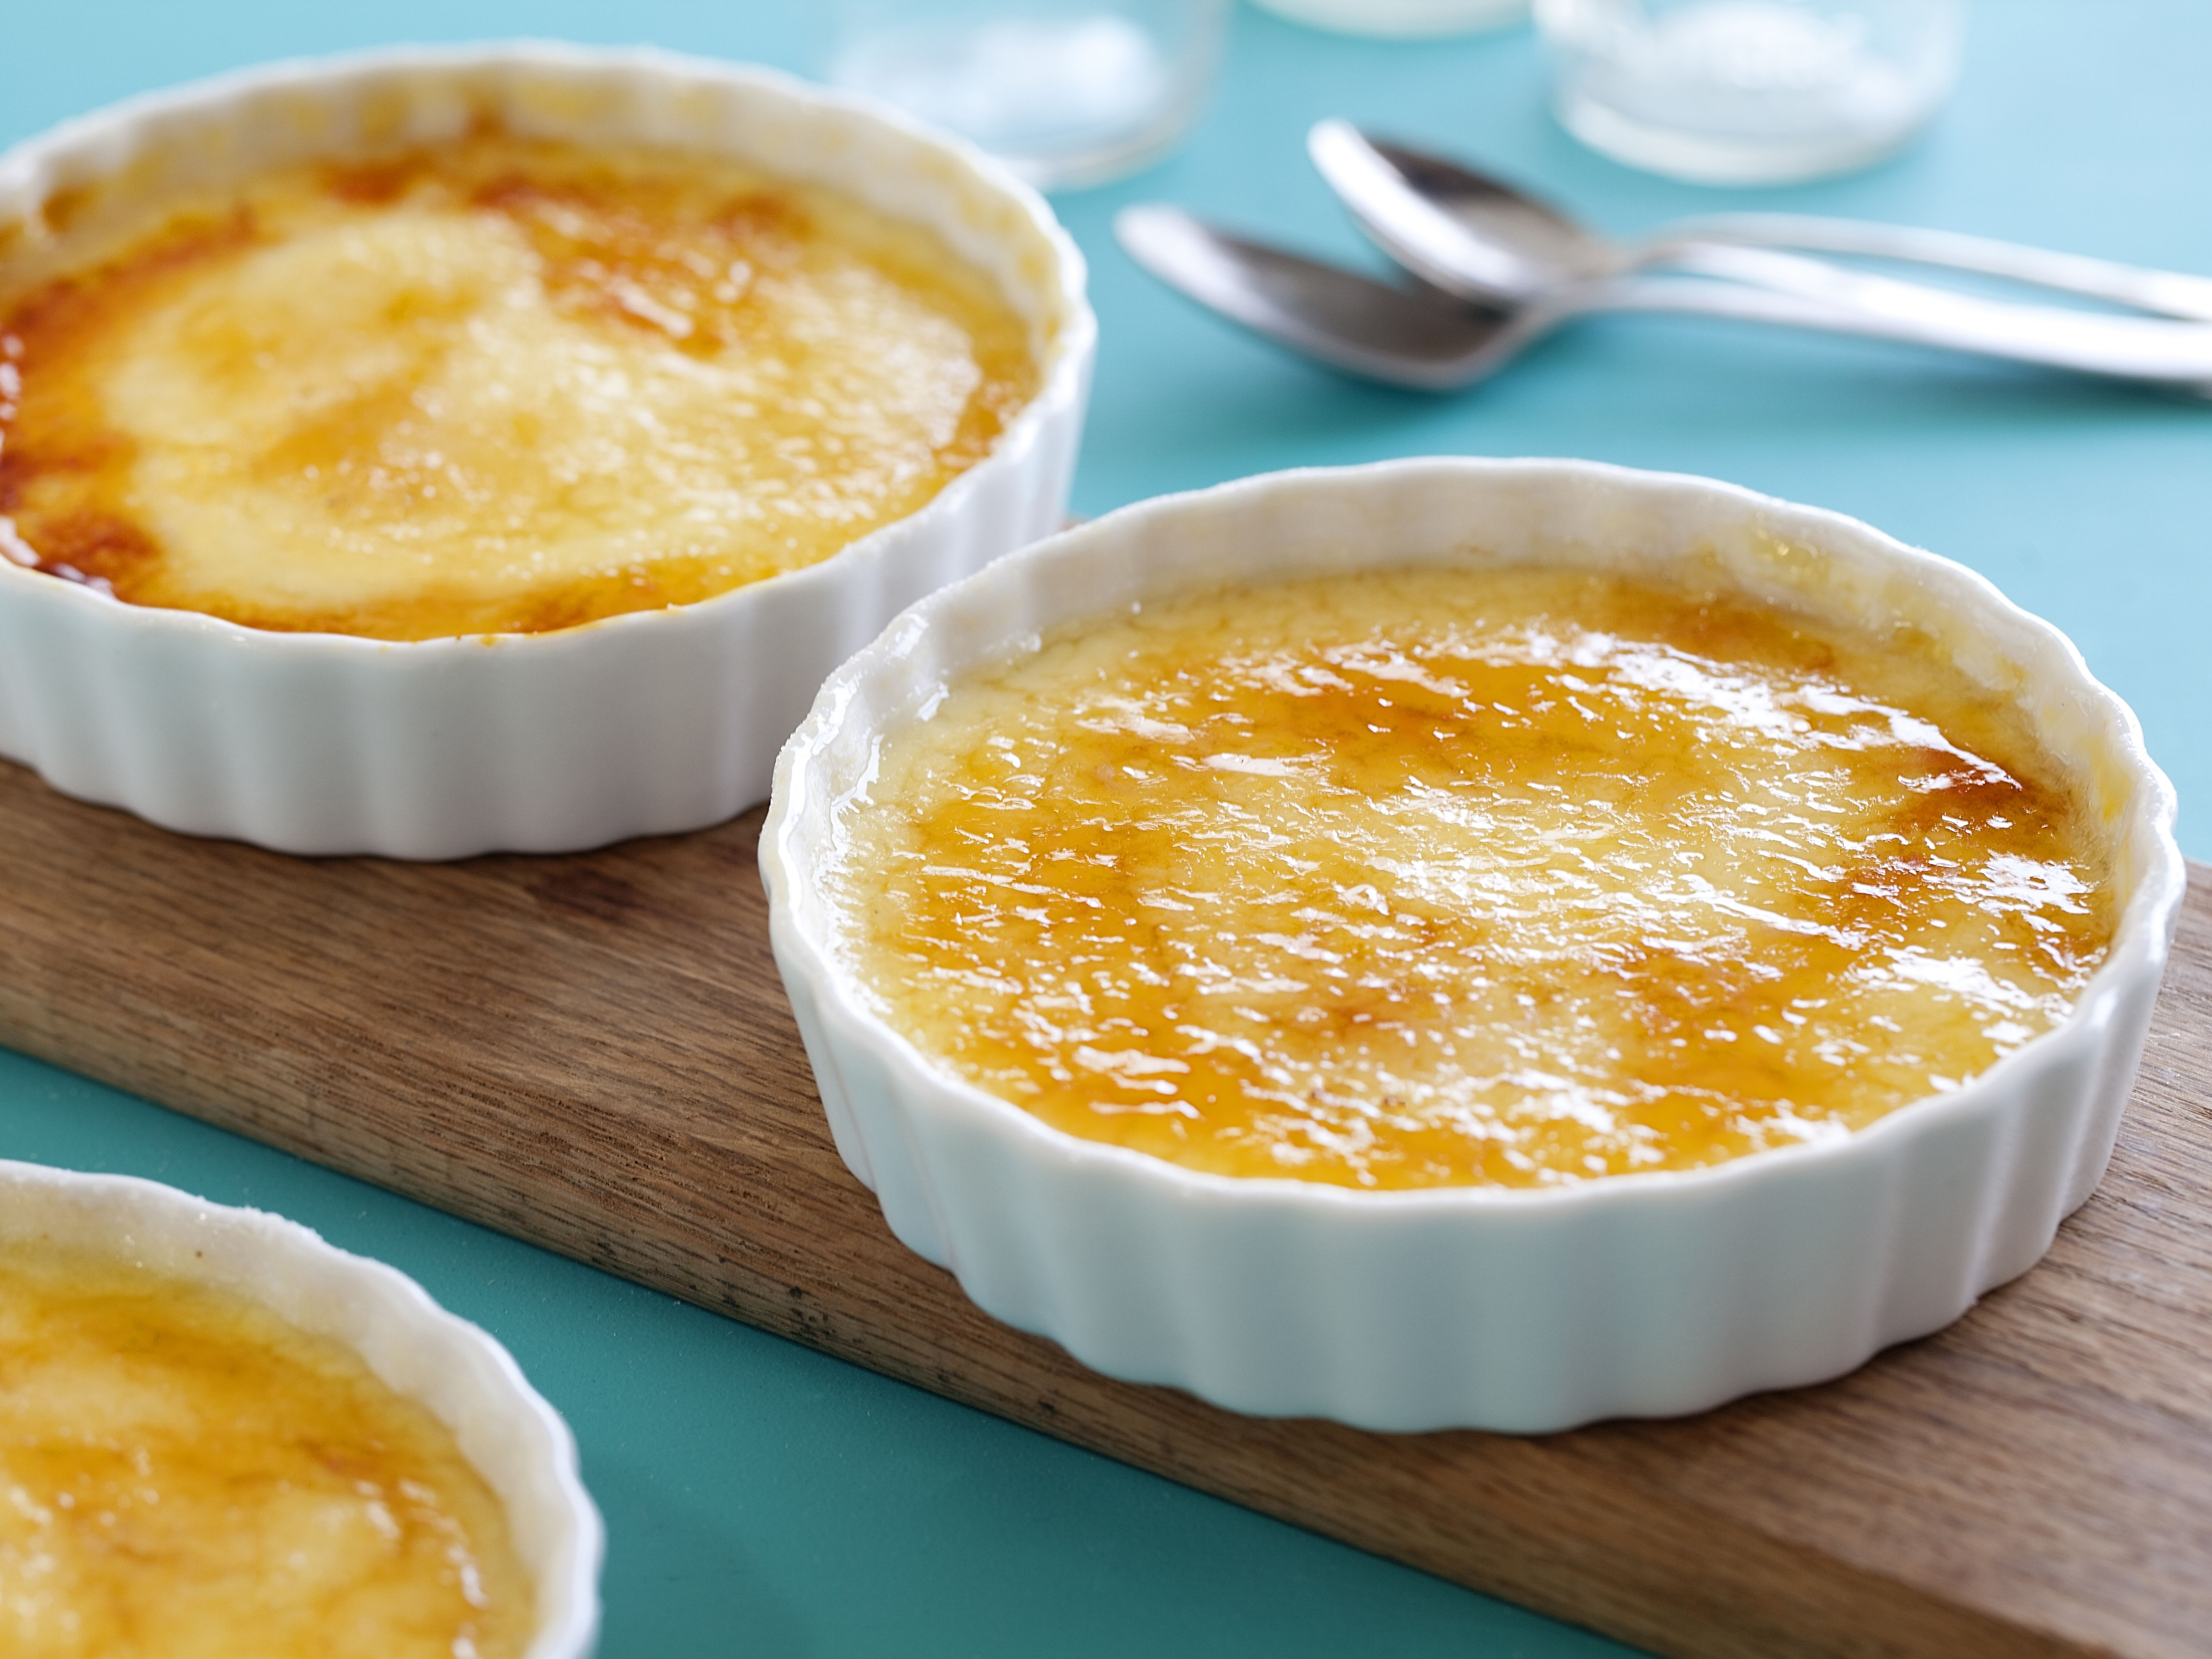 Crema catalana from cookingchanneltv desserts pinterest this week we have another fun traditional spanish recipe for you to make at home as you continue to indulge on all things delicious forumfinder Gallery